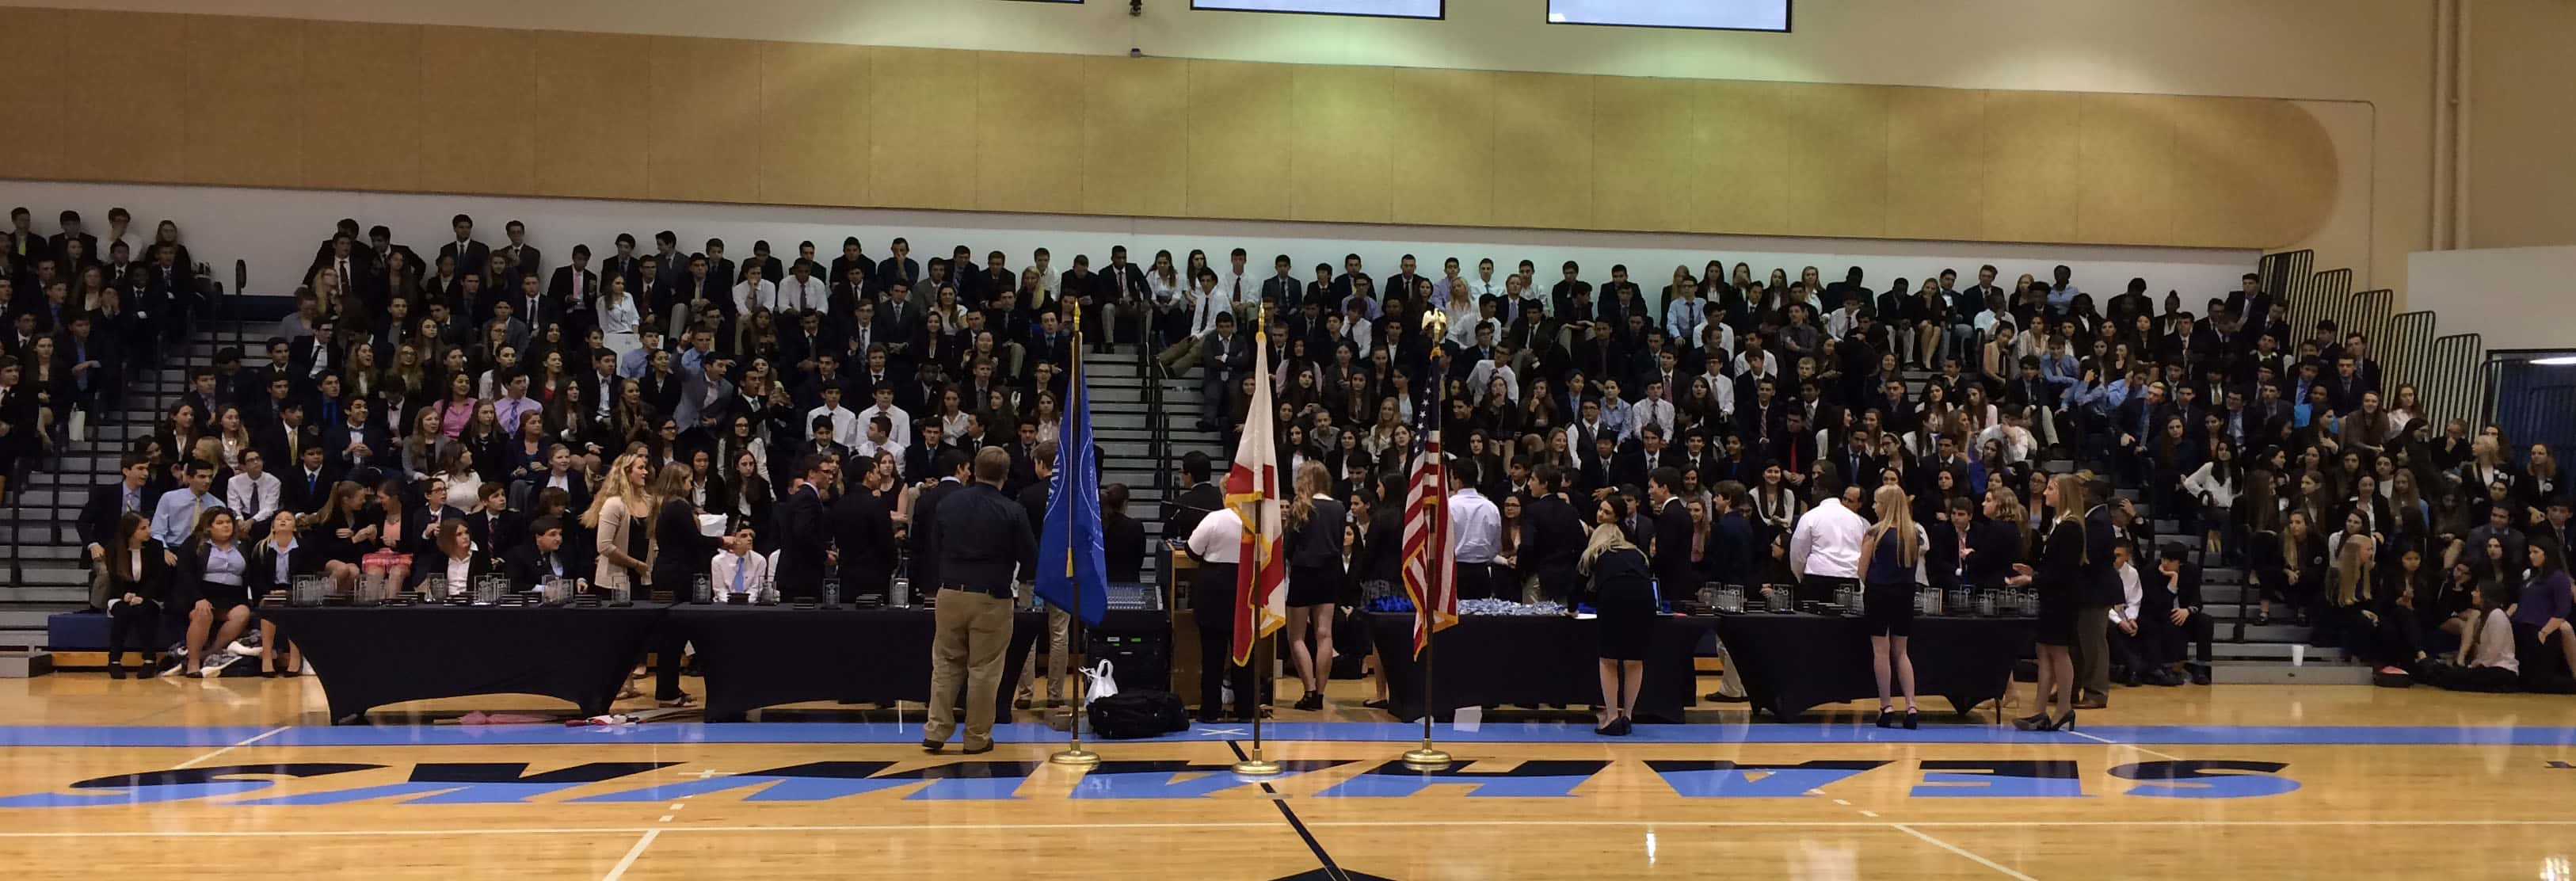 Keiser University's Flagship Campus Hosts DECA Competitions